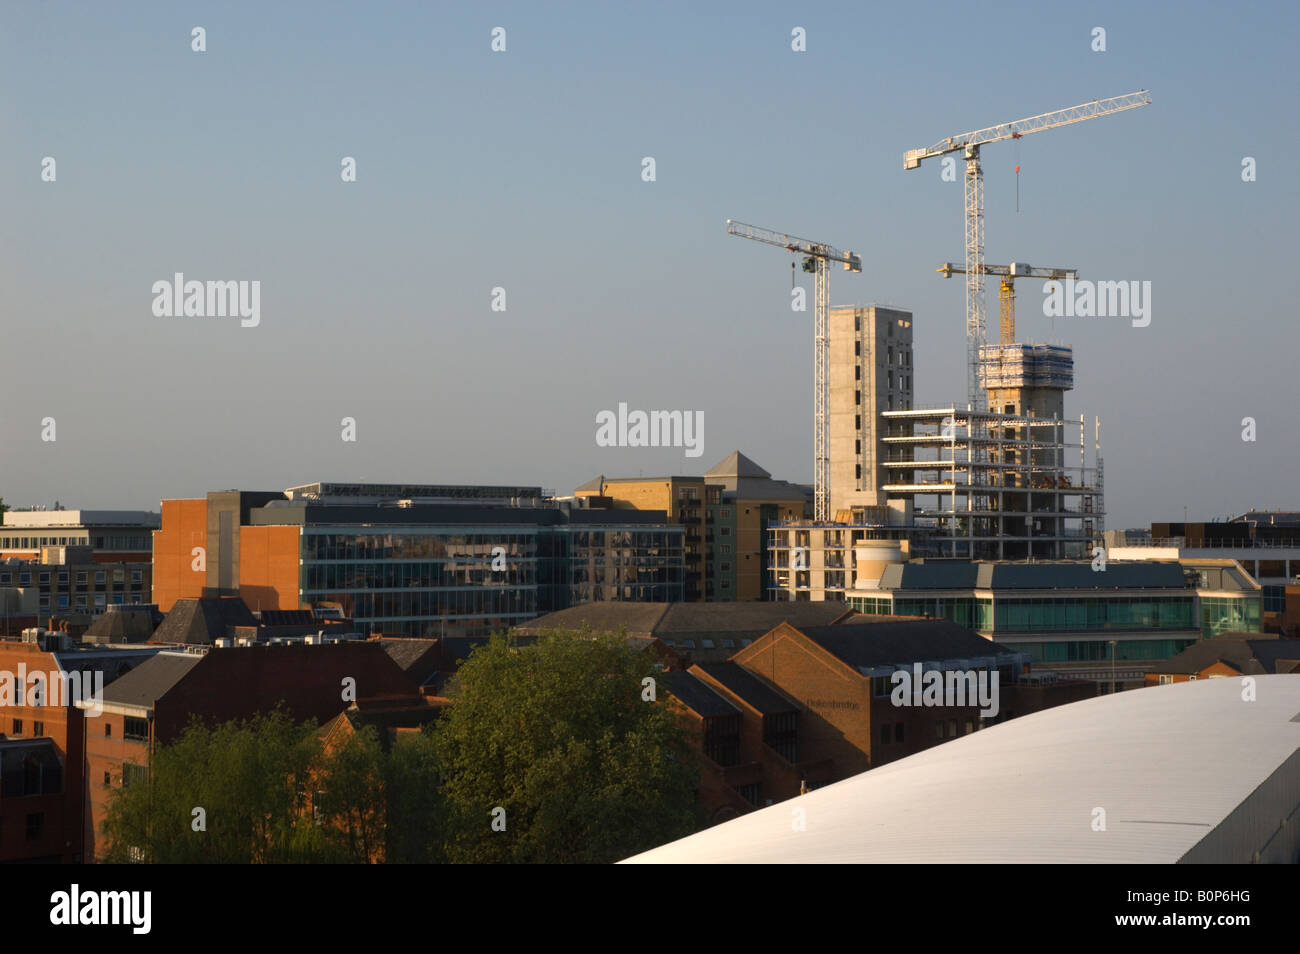 Construction of Abbey Mill House, Reading, Berkshire 2/2 - Stock Image